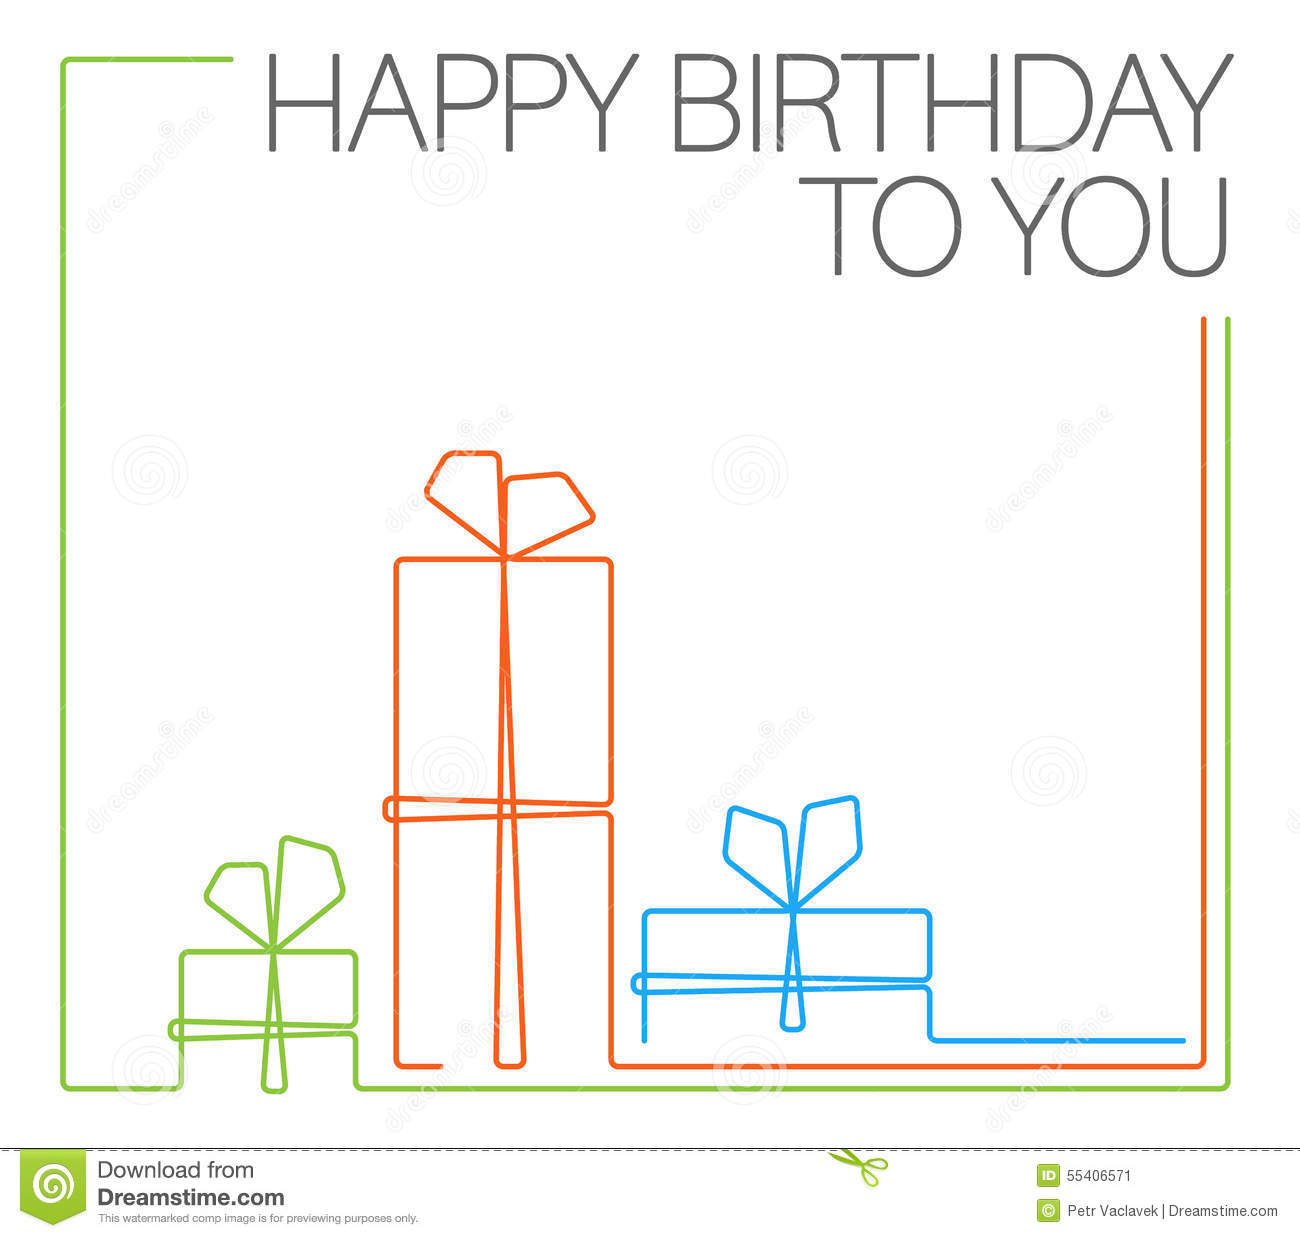 6 Birthday Card Templates: Birthday Minimalistic Card Template Stock Vector